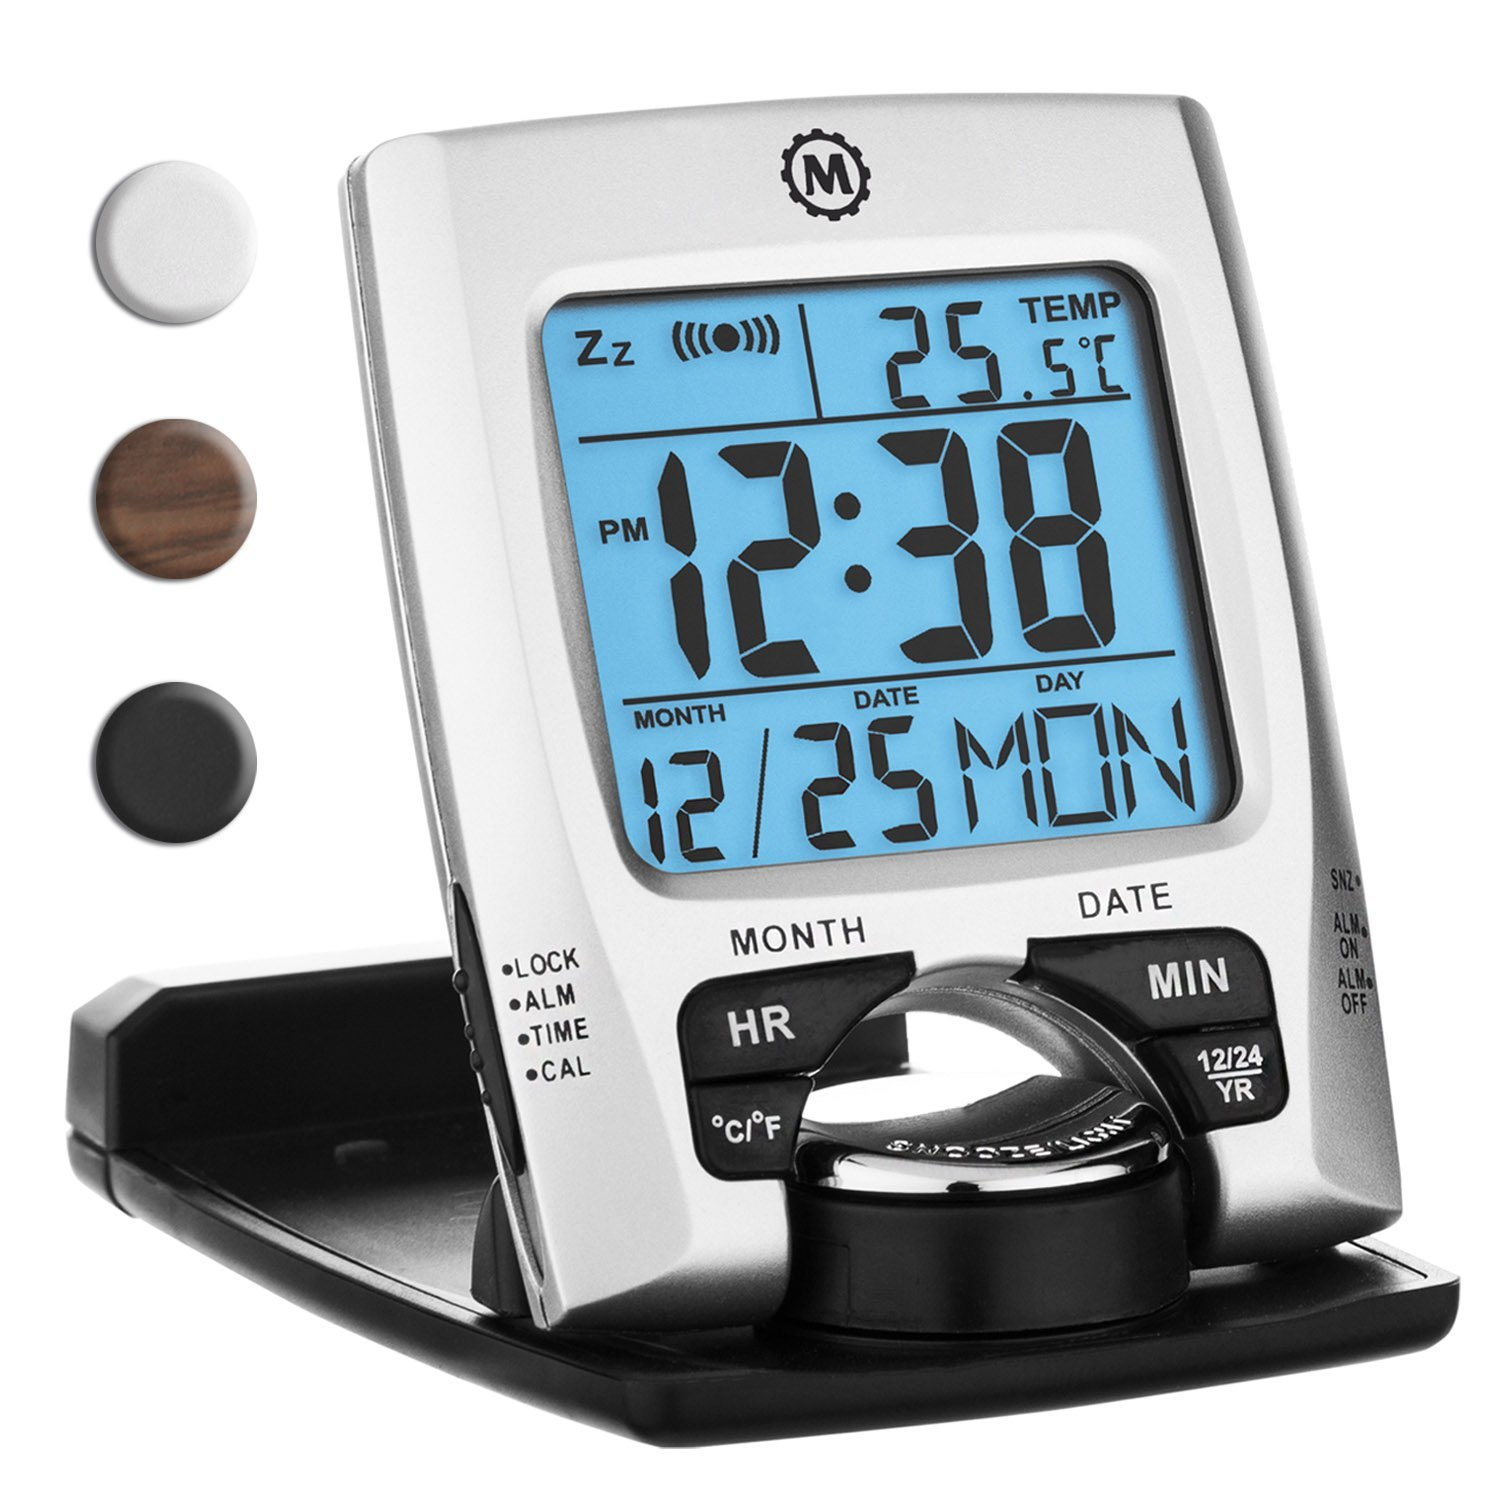 MARATHON CL030023 Travel Alarm Clock with Calendar & Temperature - Battery Included